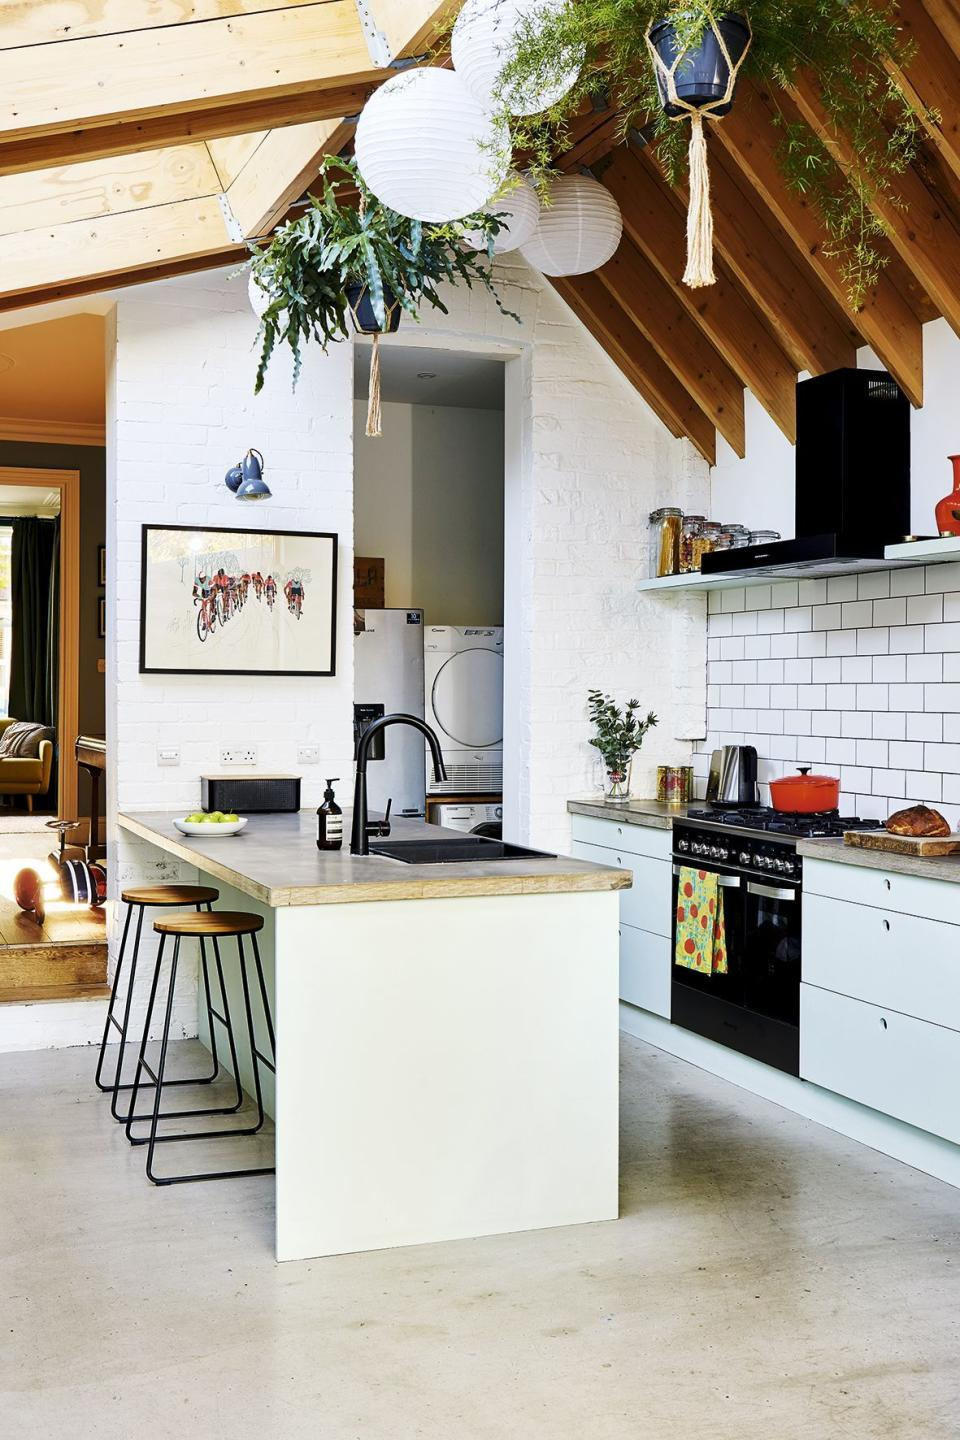 Kitchen extension with a glass roof and breakfast bar